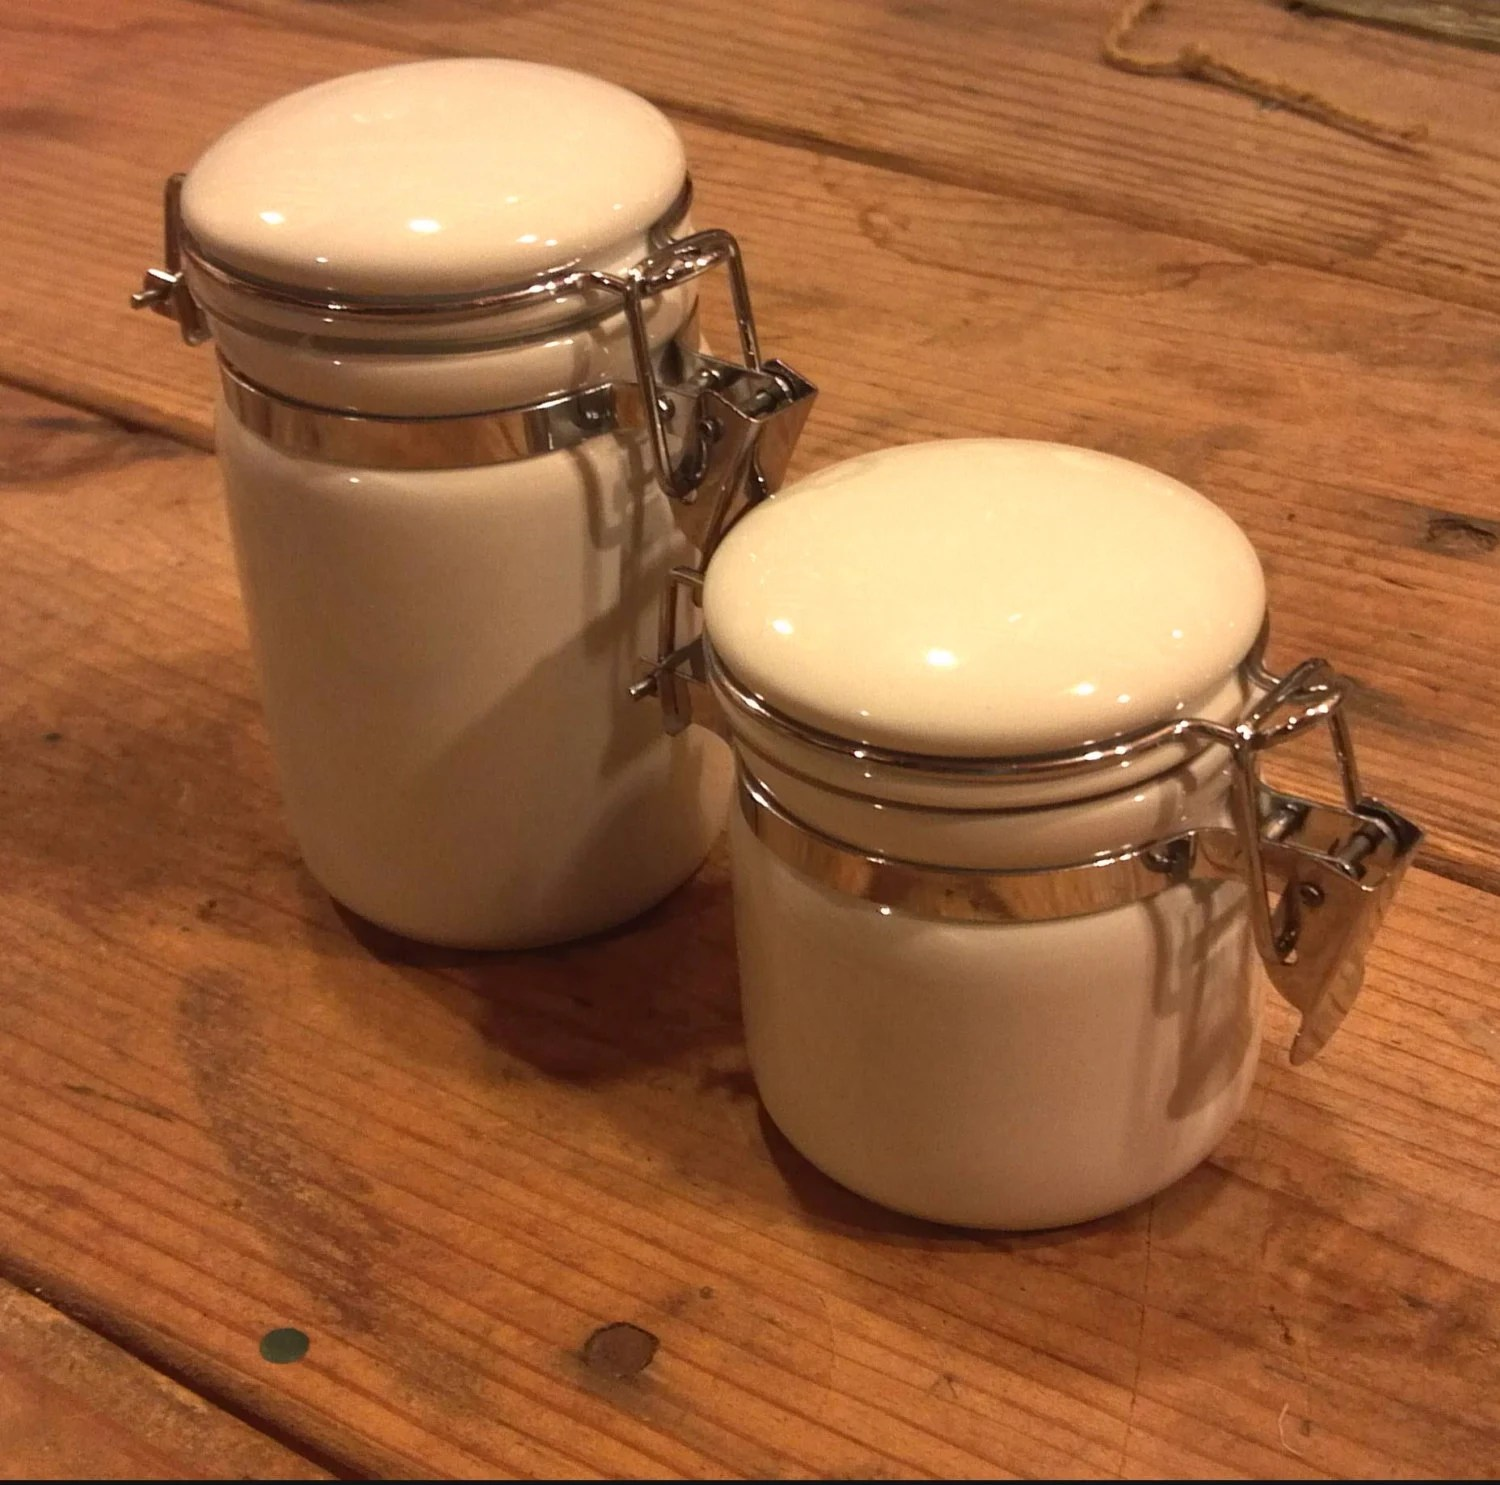 Small Ceramic Jars With Lids 2 Small White Porcelain Apothecary Jars With Hinged Lids